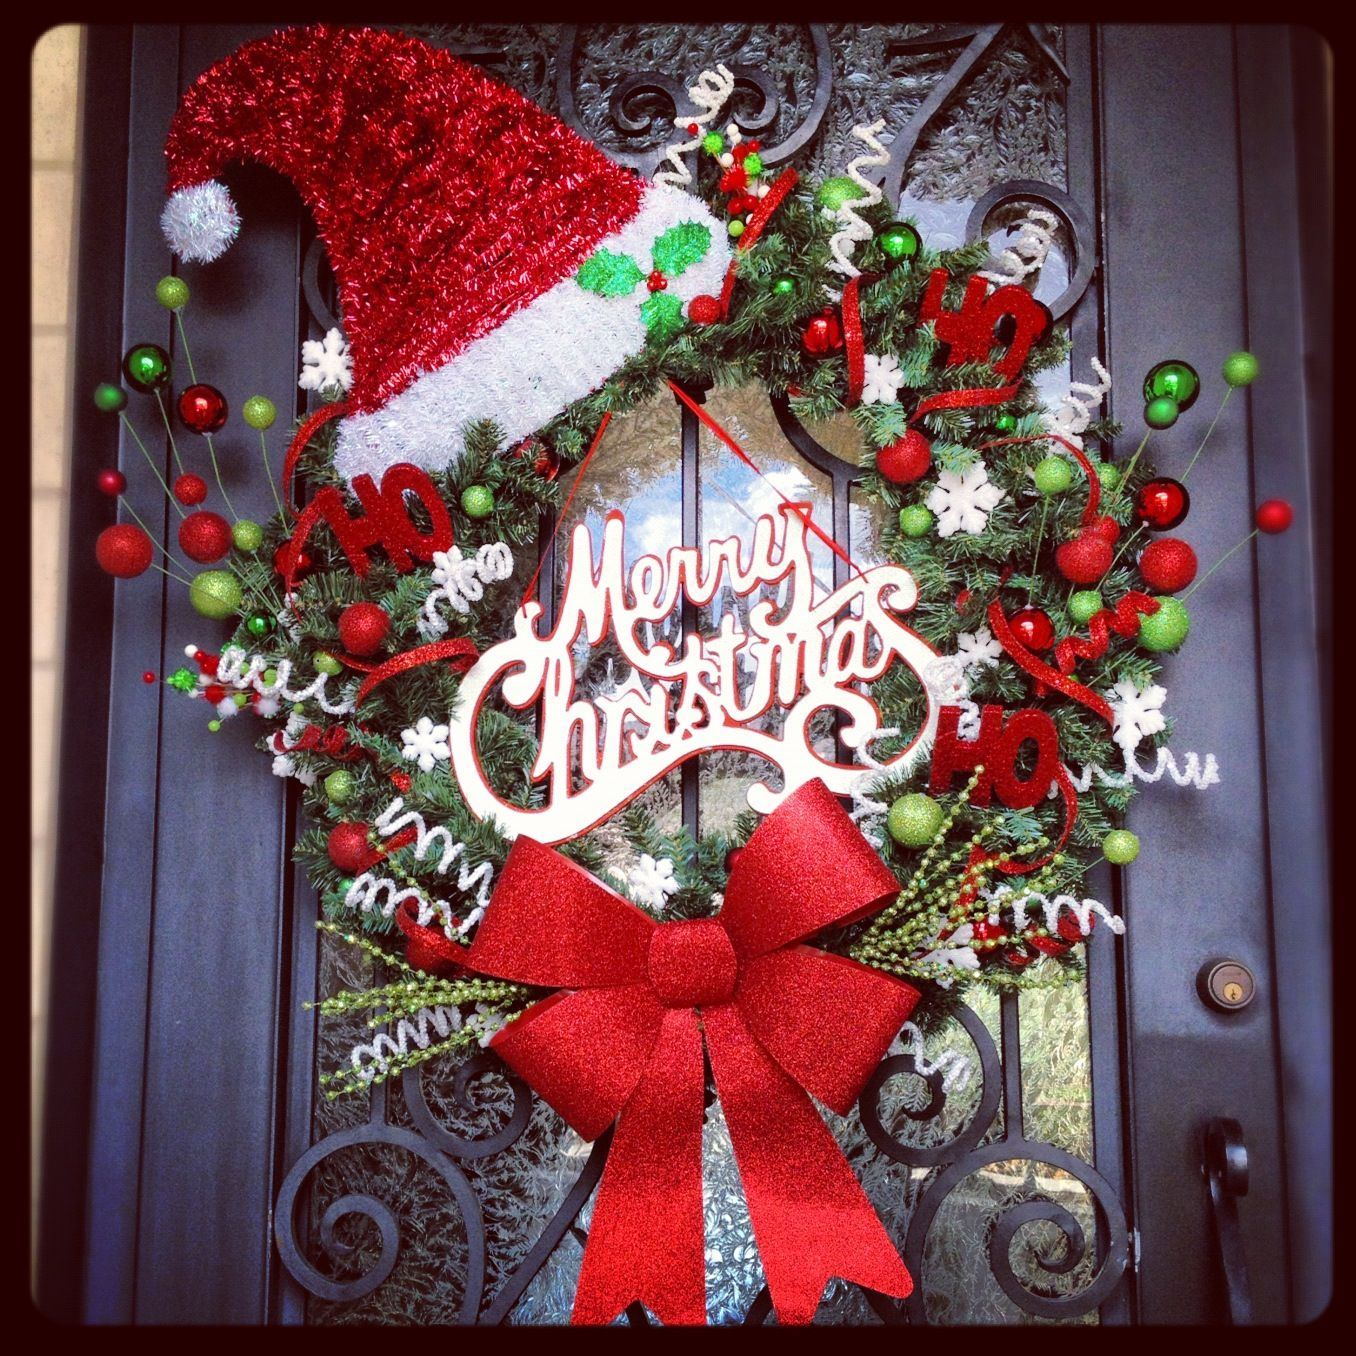 Homemade Decoration Ideas: Homemade Christmas Decorations